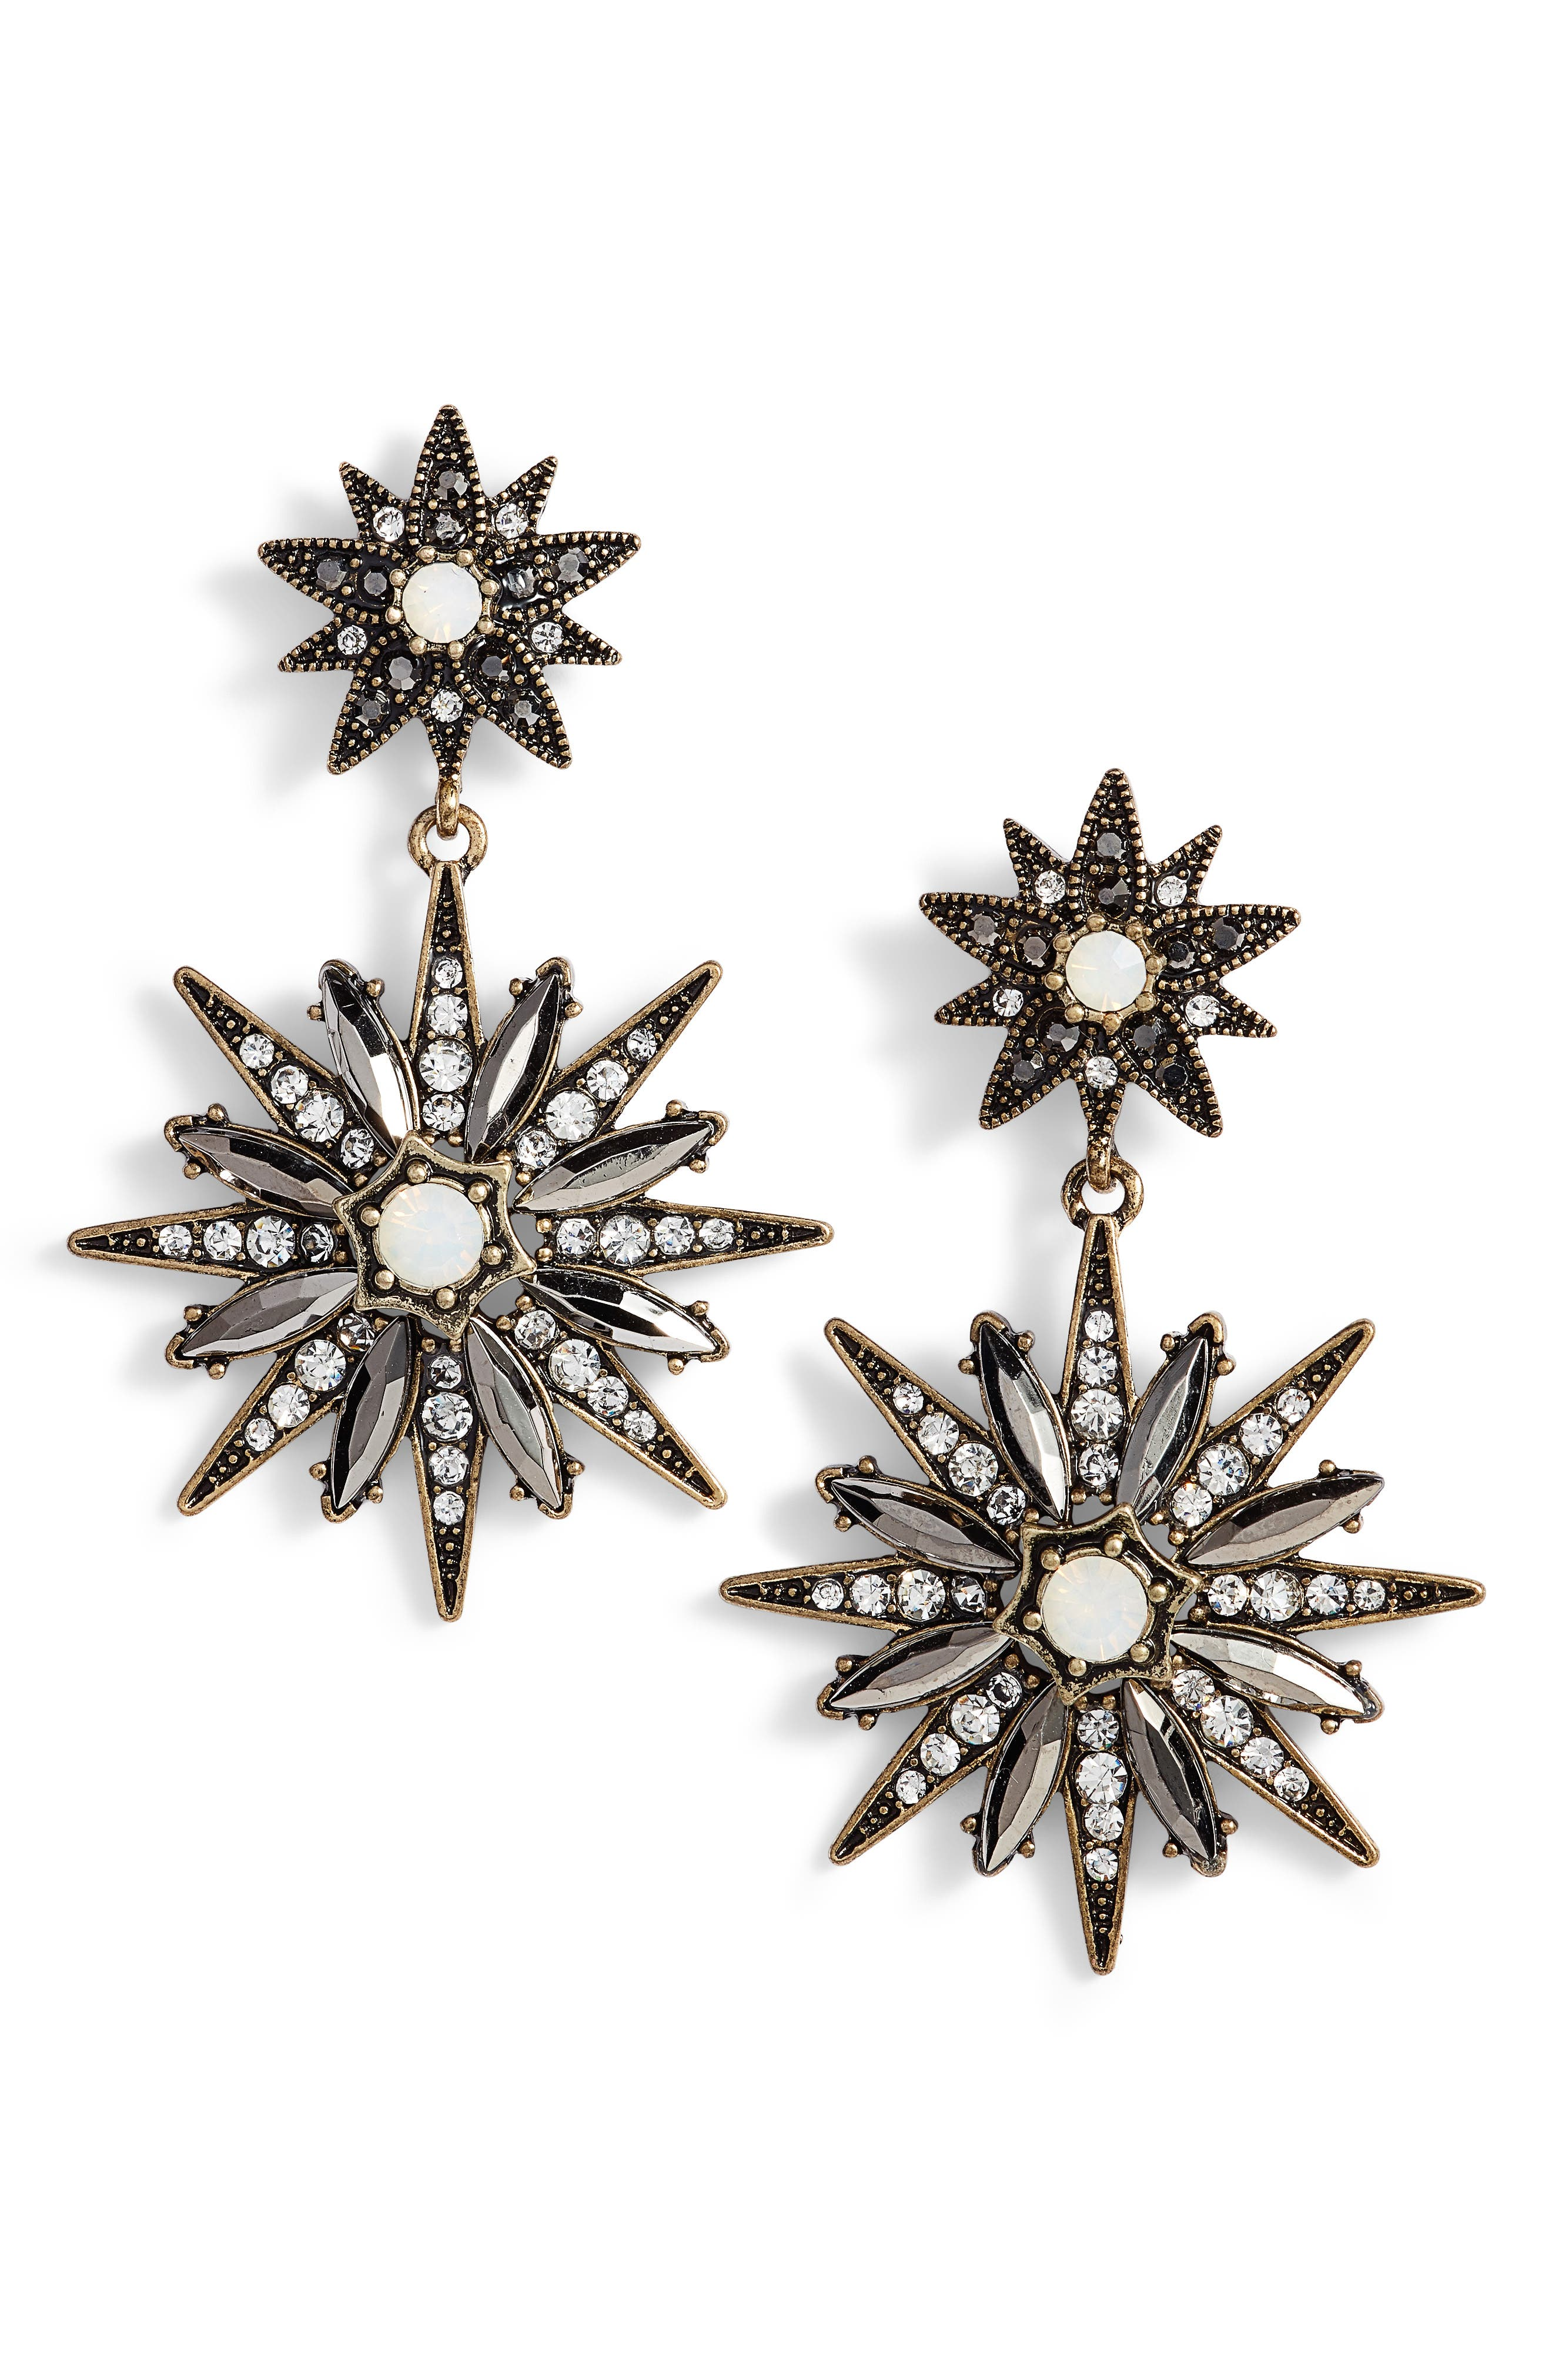 Starburst Statement Earrings,                             Main thumbnail 1, color,                             Antique Gold/ Black